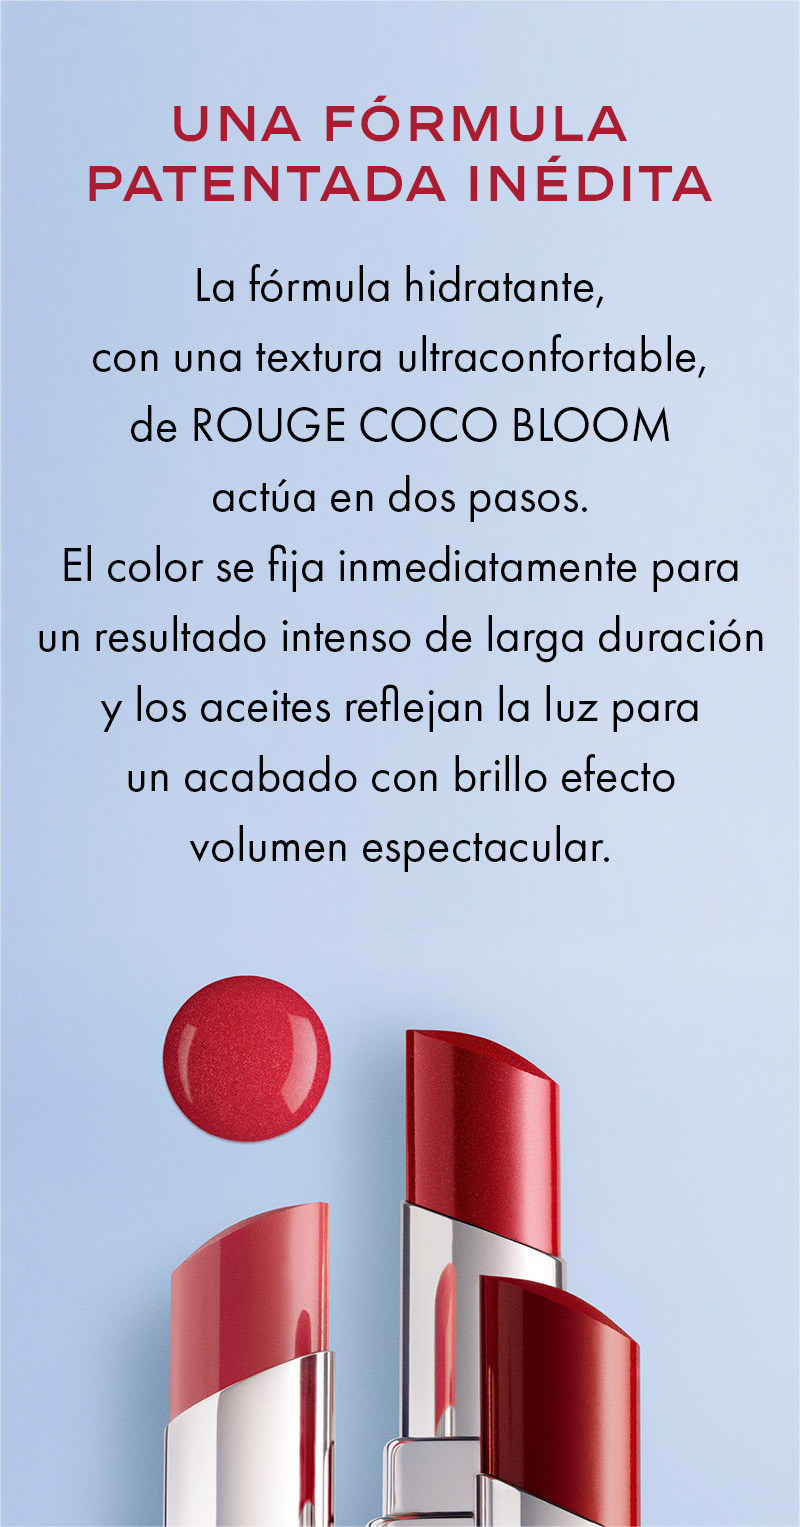 COCO BLOOM